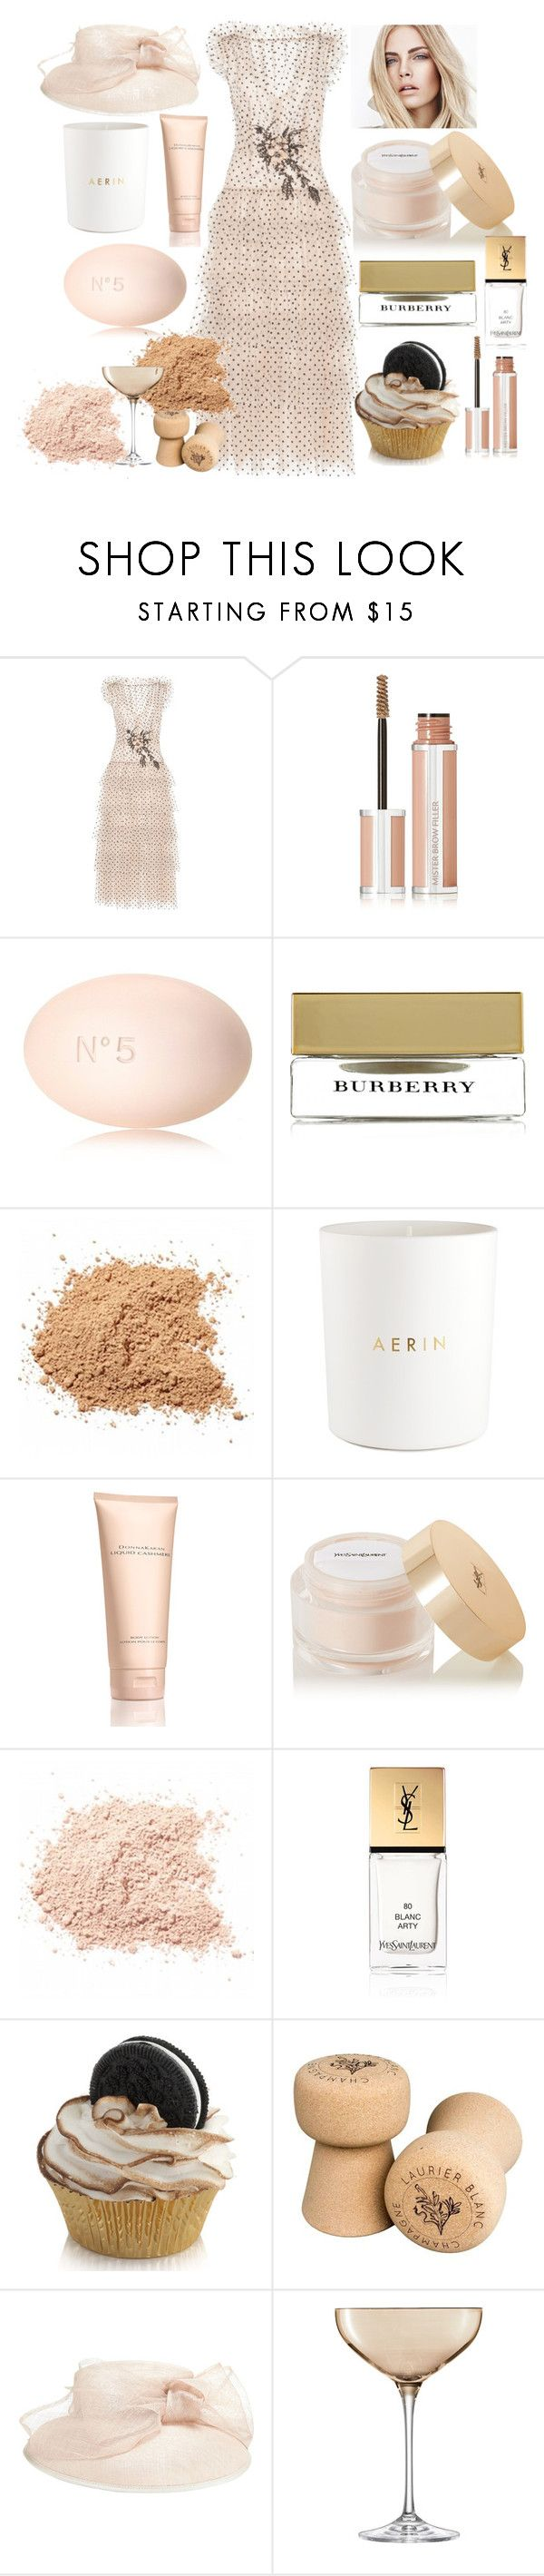 """pure PASTEL"" by mara-wink ❤ liked on Polyvore featuring Rodarte, Givenchy, Chanel, Burberry, Estée Lauder, Donna Karan, Yves Saint Laurent and LSA International"